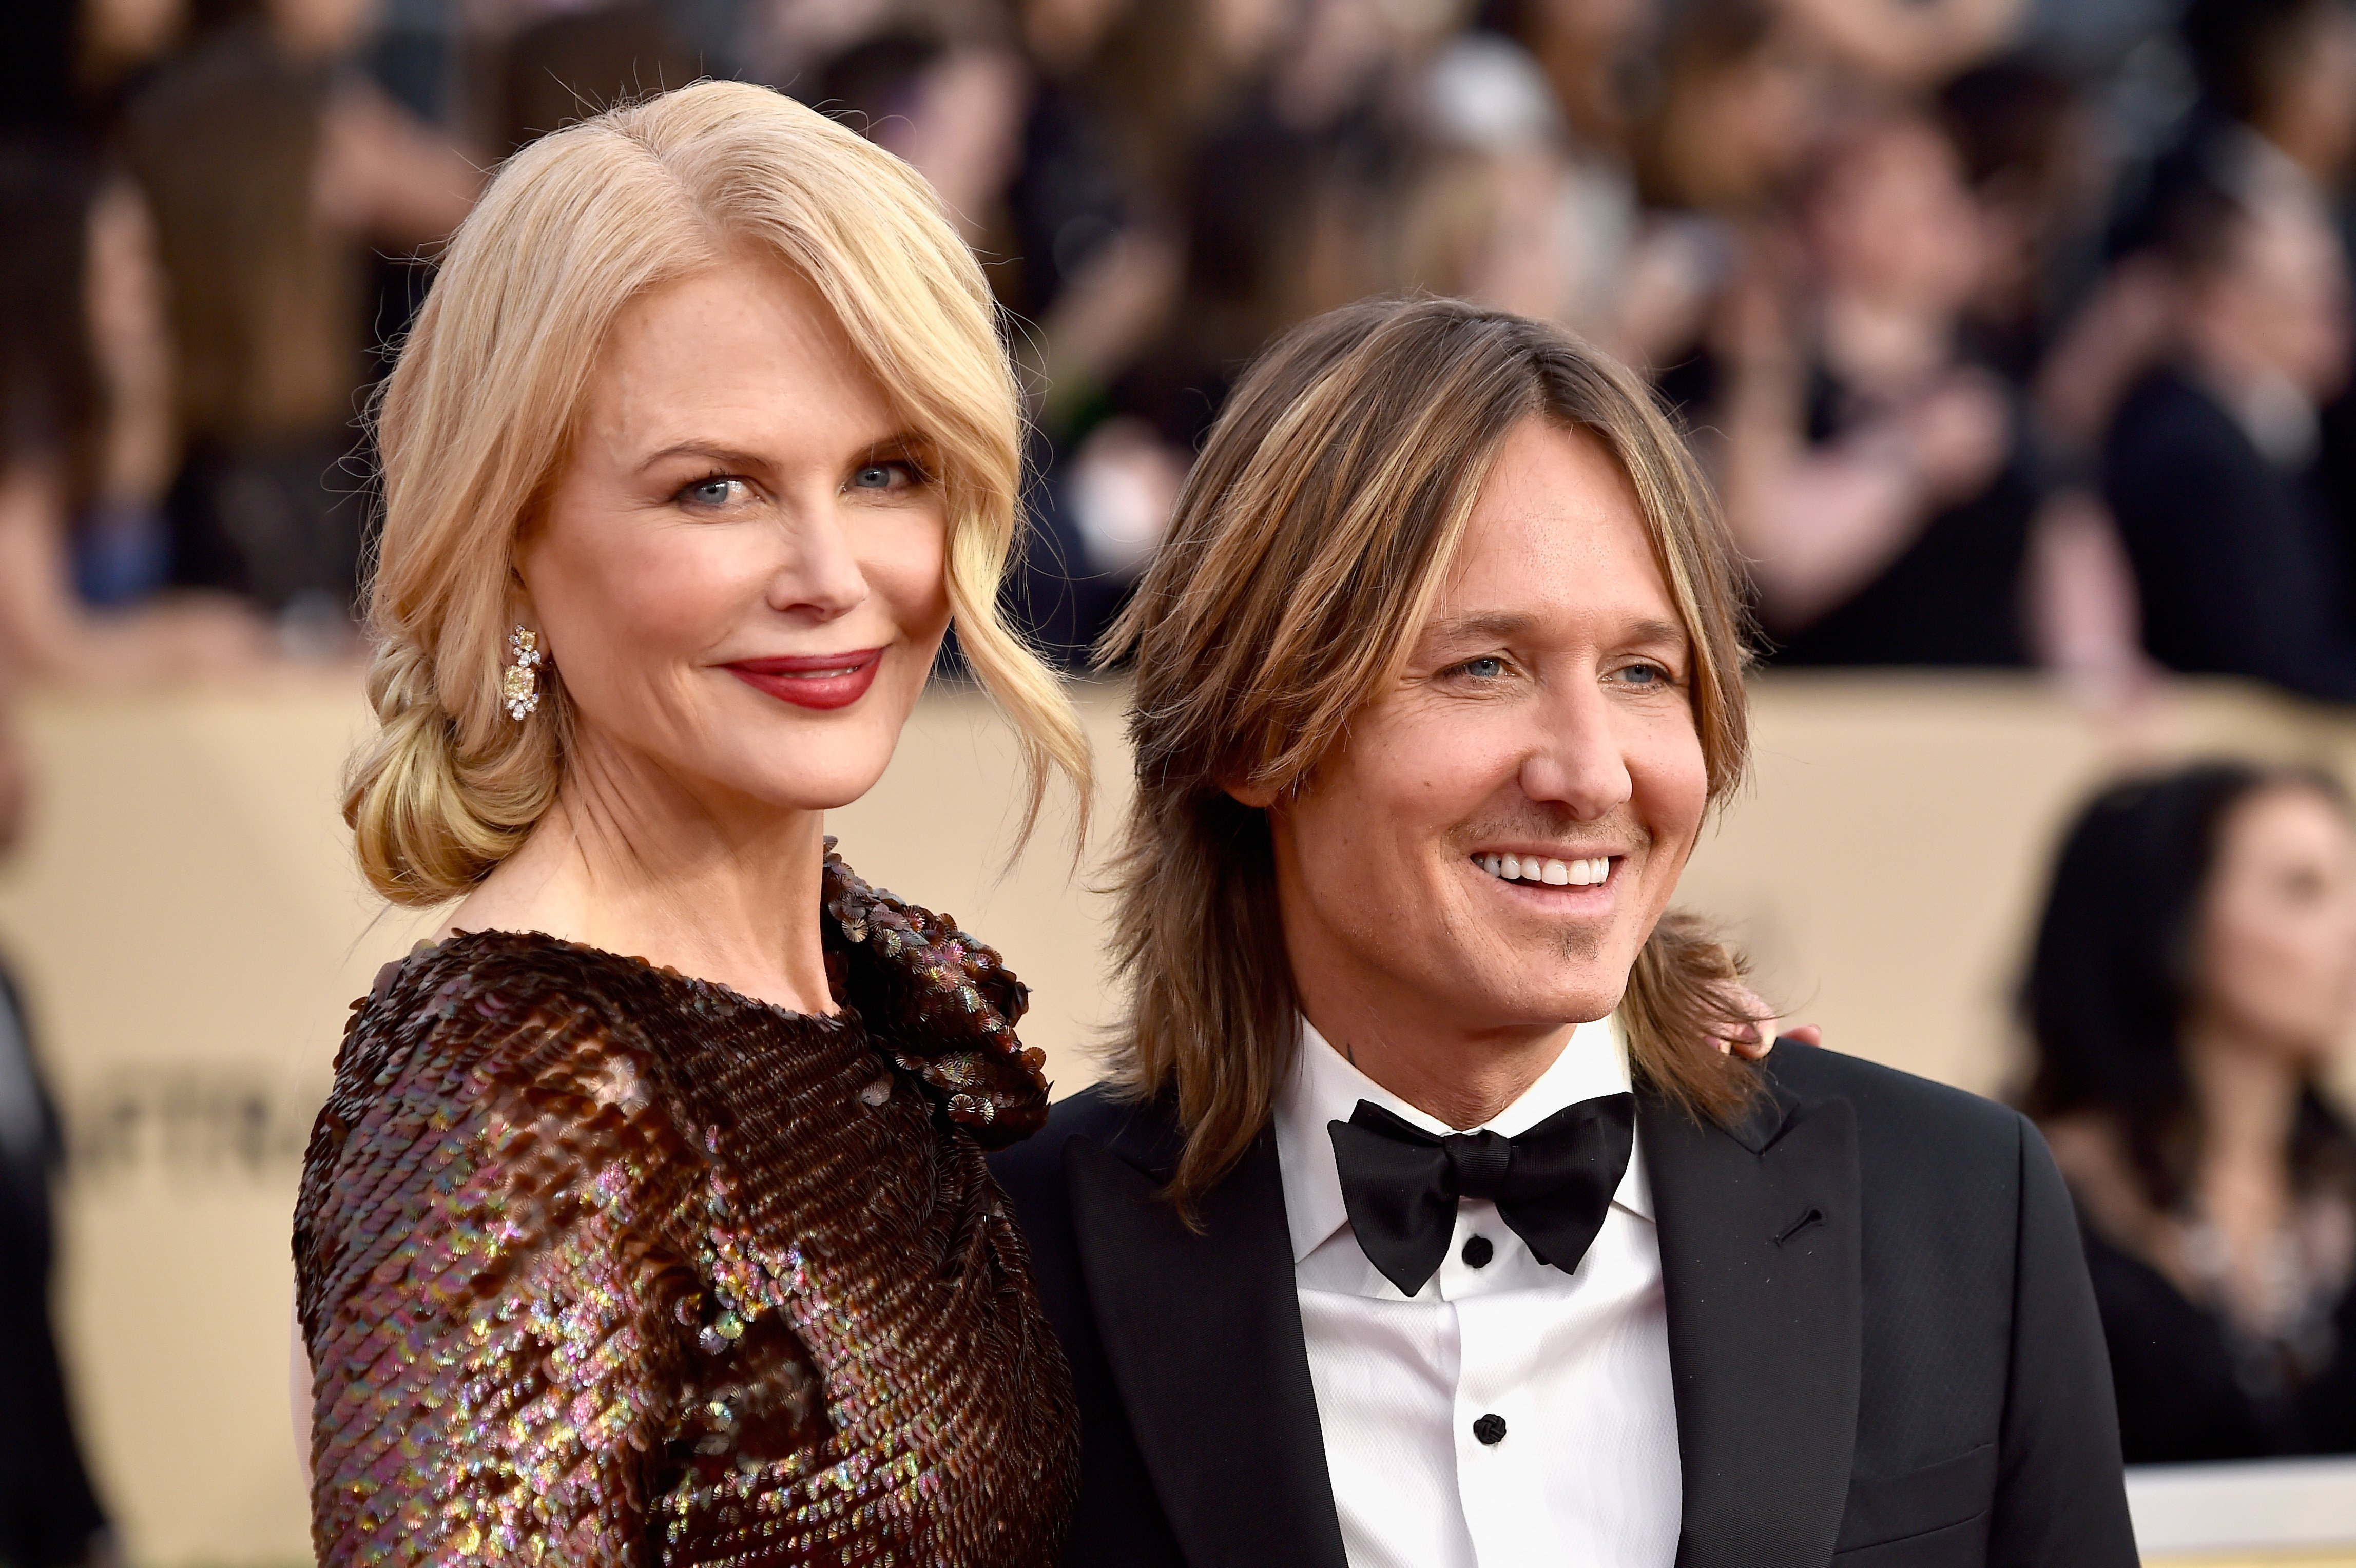 Nicole Kidman and Keith Urban attend the 24th Annual Screen ActorsGuild Awards at The Shrine Auditorium on January 21, 2018 in Los Angeles, California | Photo: Getty Images